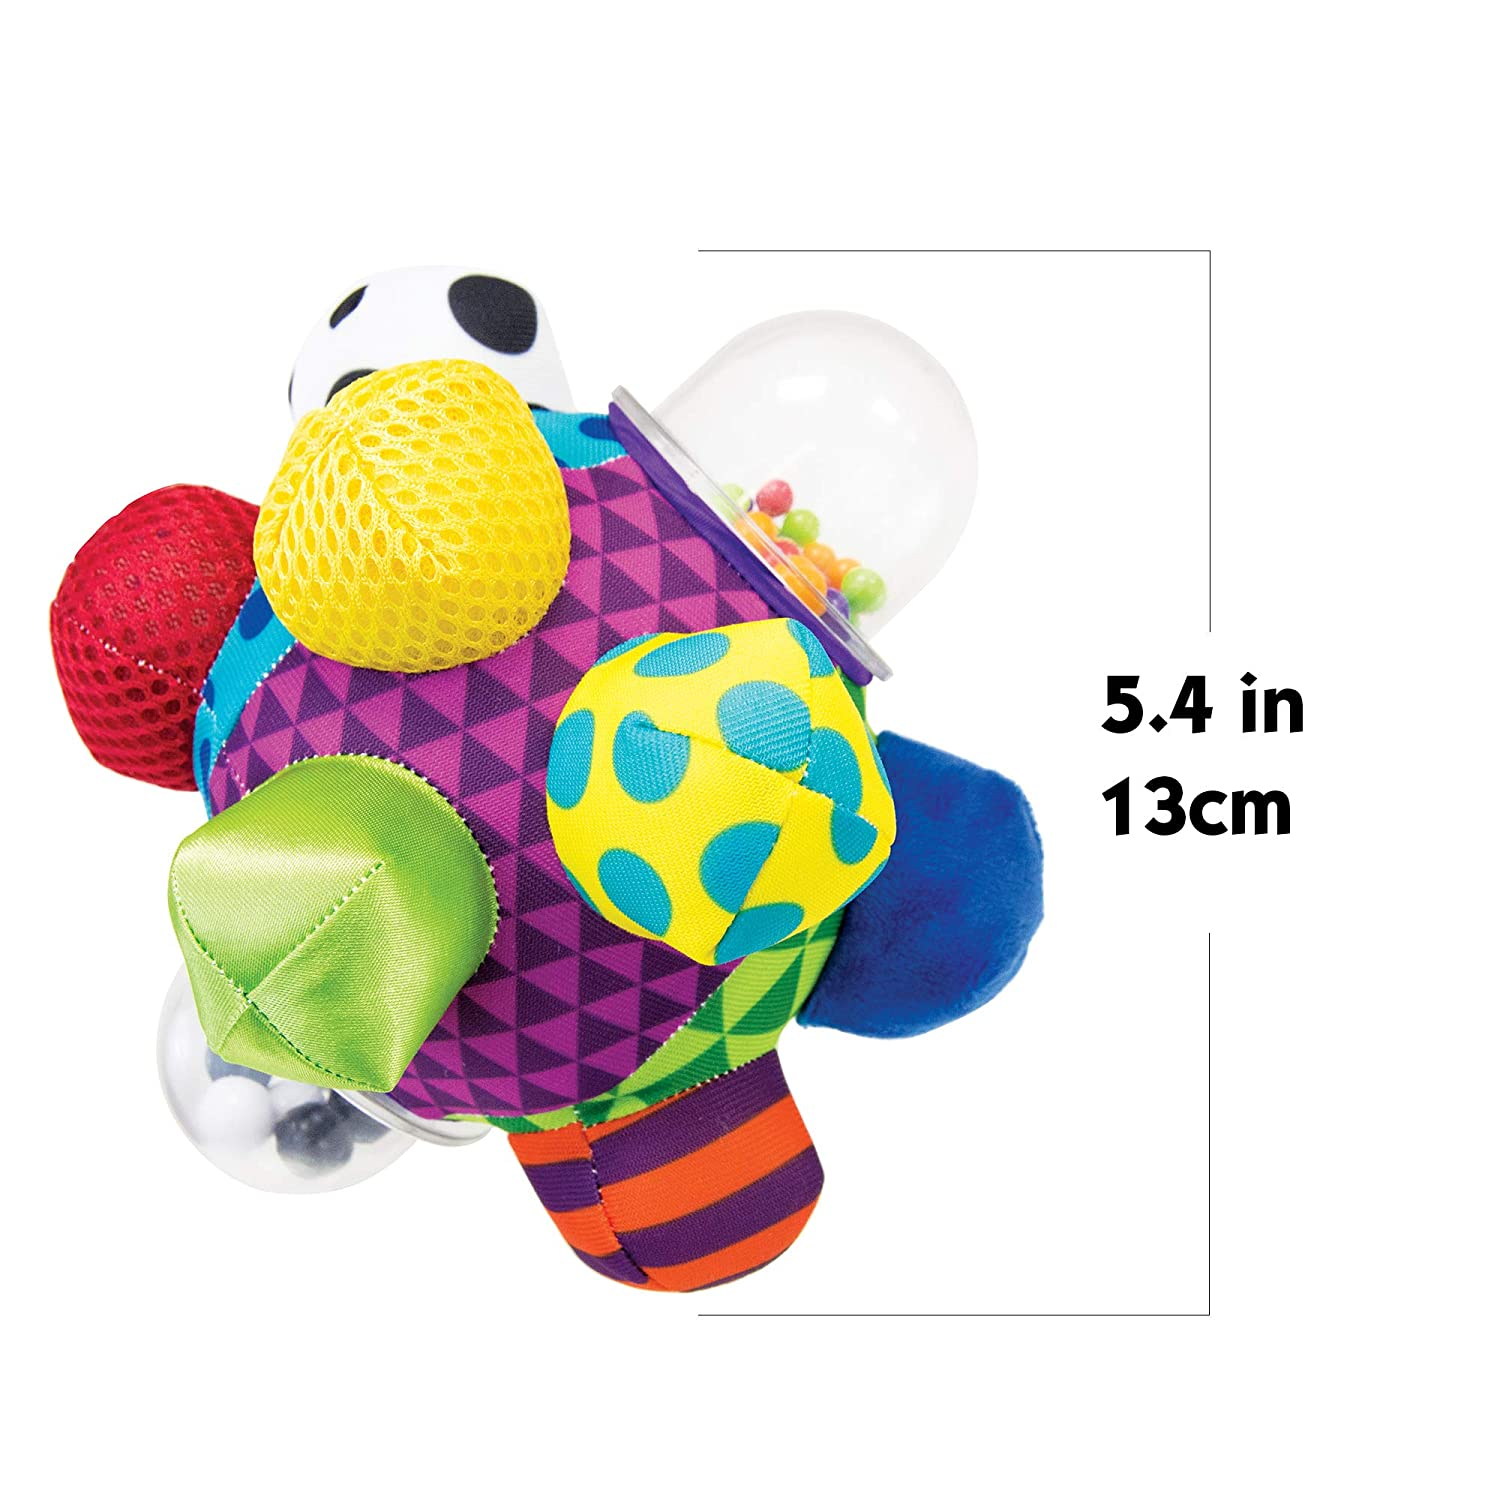 Sassy Developmental Bumpy Ball for Baby/&Toddler romotes Sensory Integration